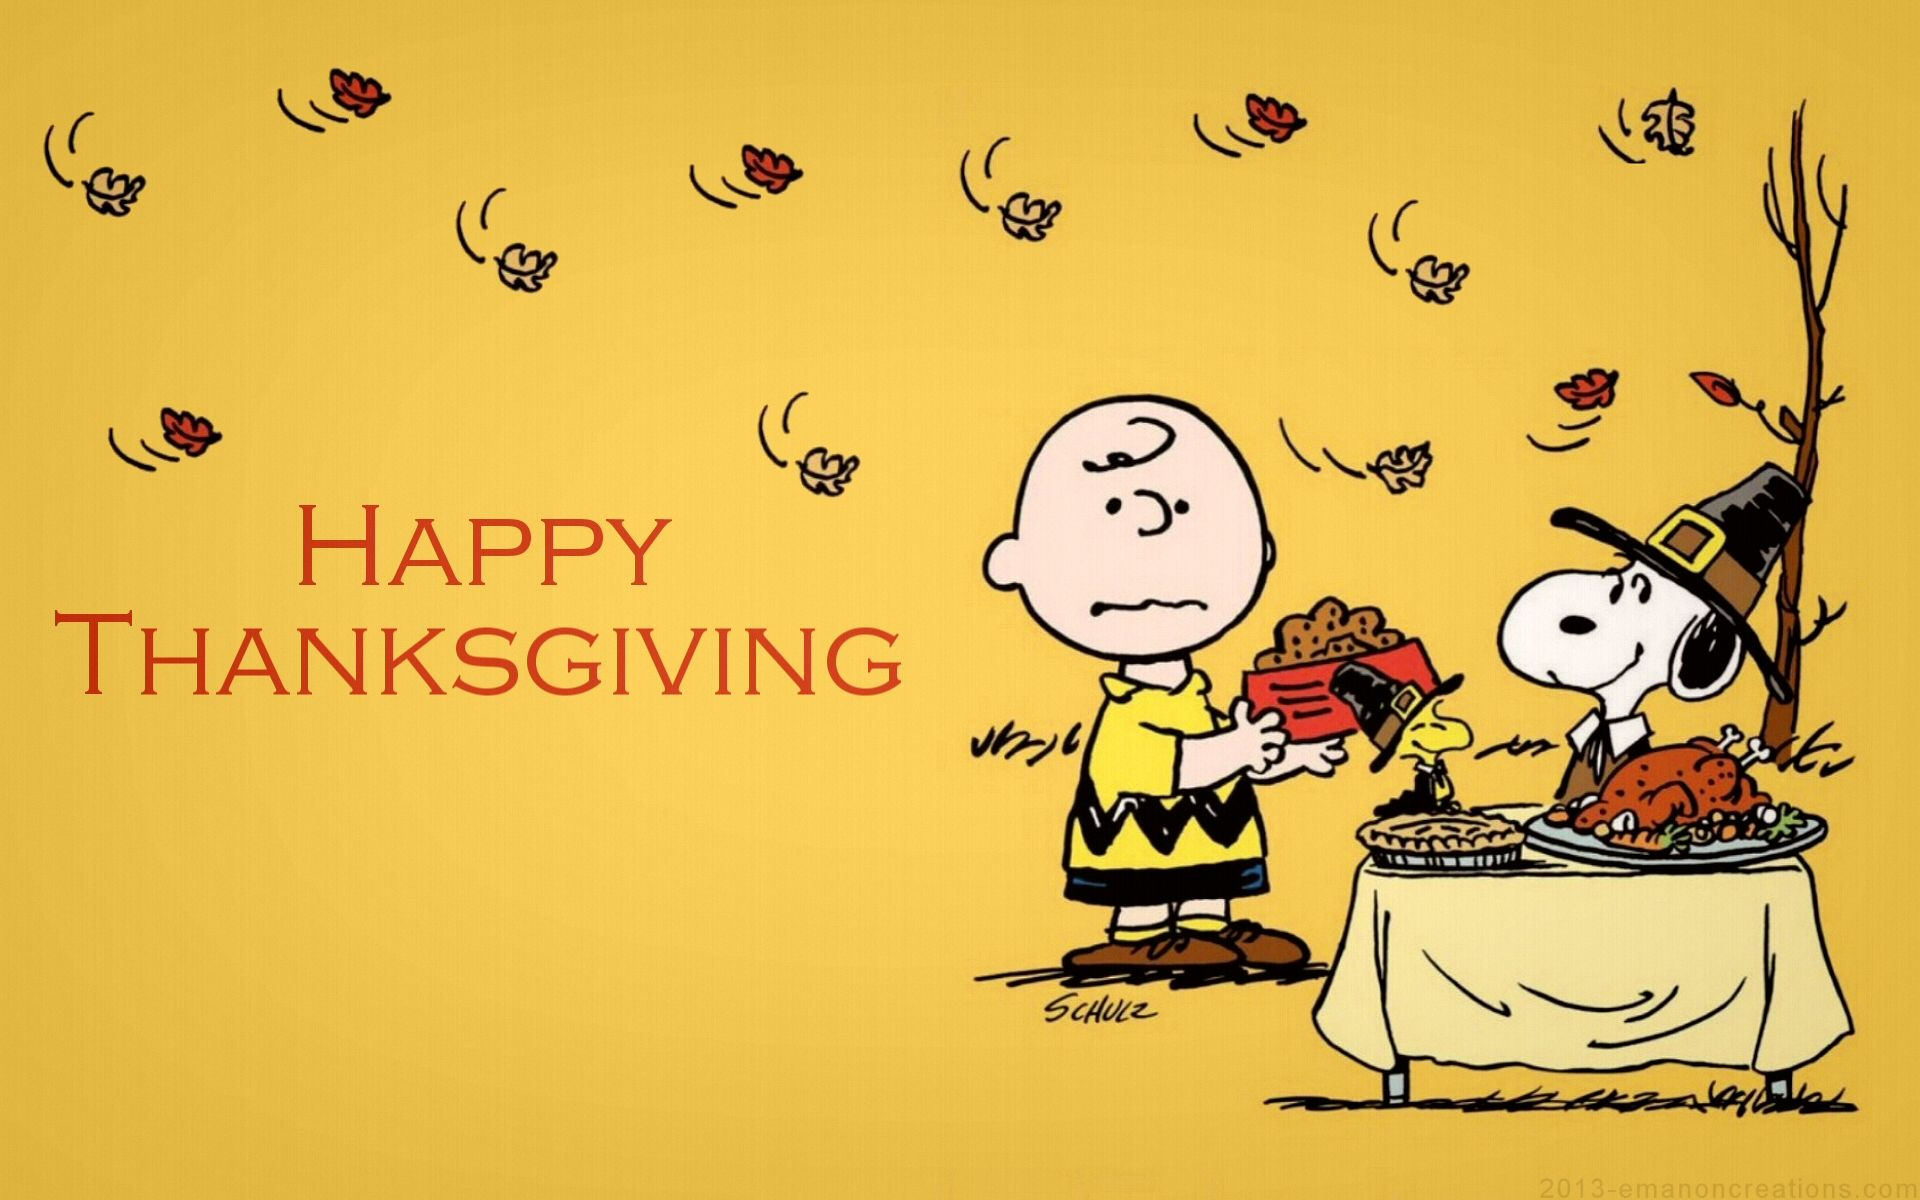 Peanuts Thanksgiving Wallpapers Top Free Peanuts Thanksgiving Backgrounds Wallpaperaccess